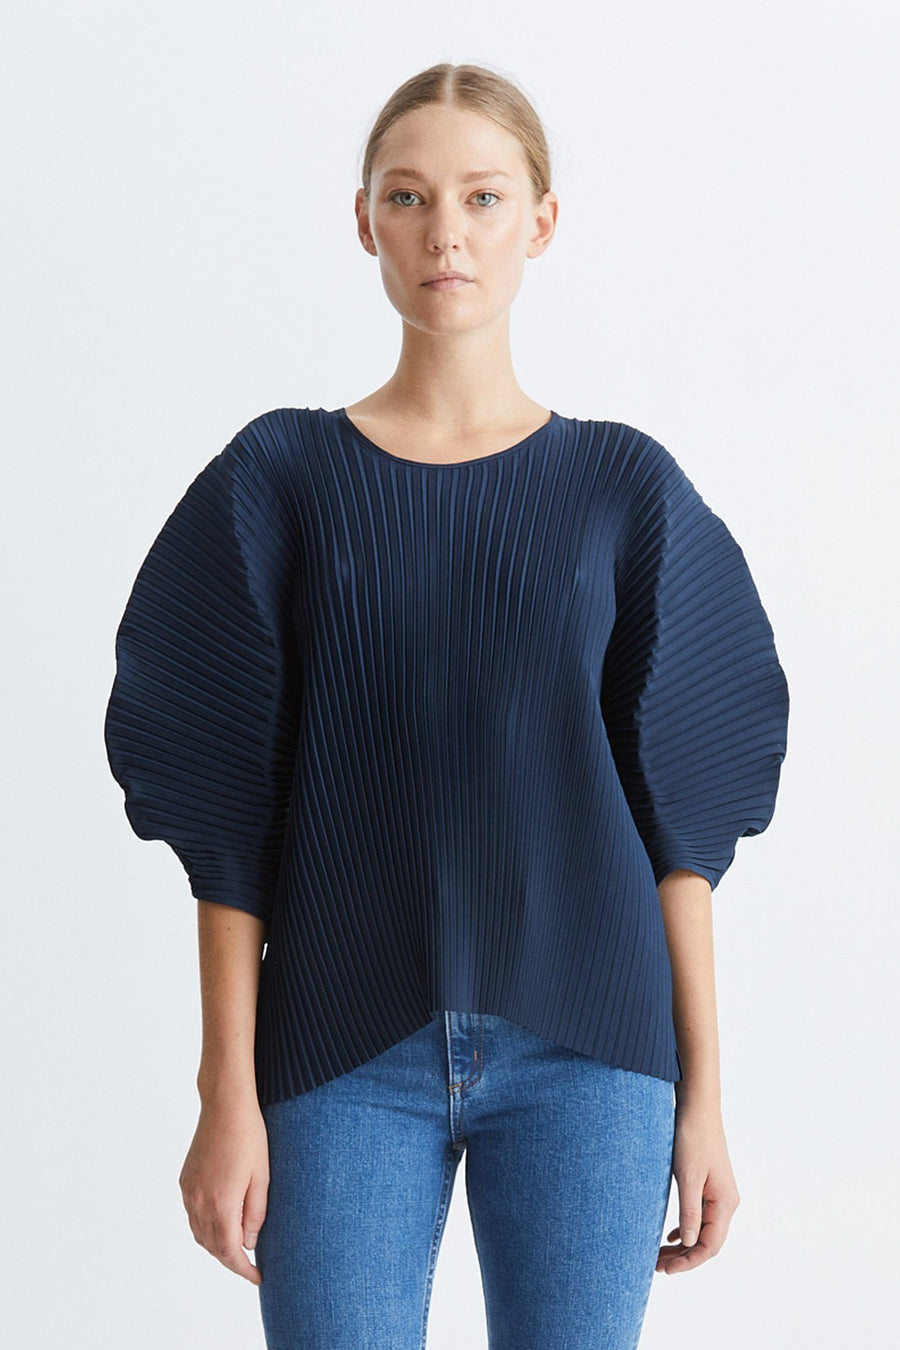 ISE TOP - NAVY Top Stylein